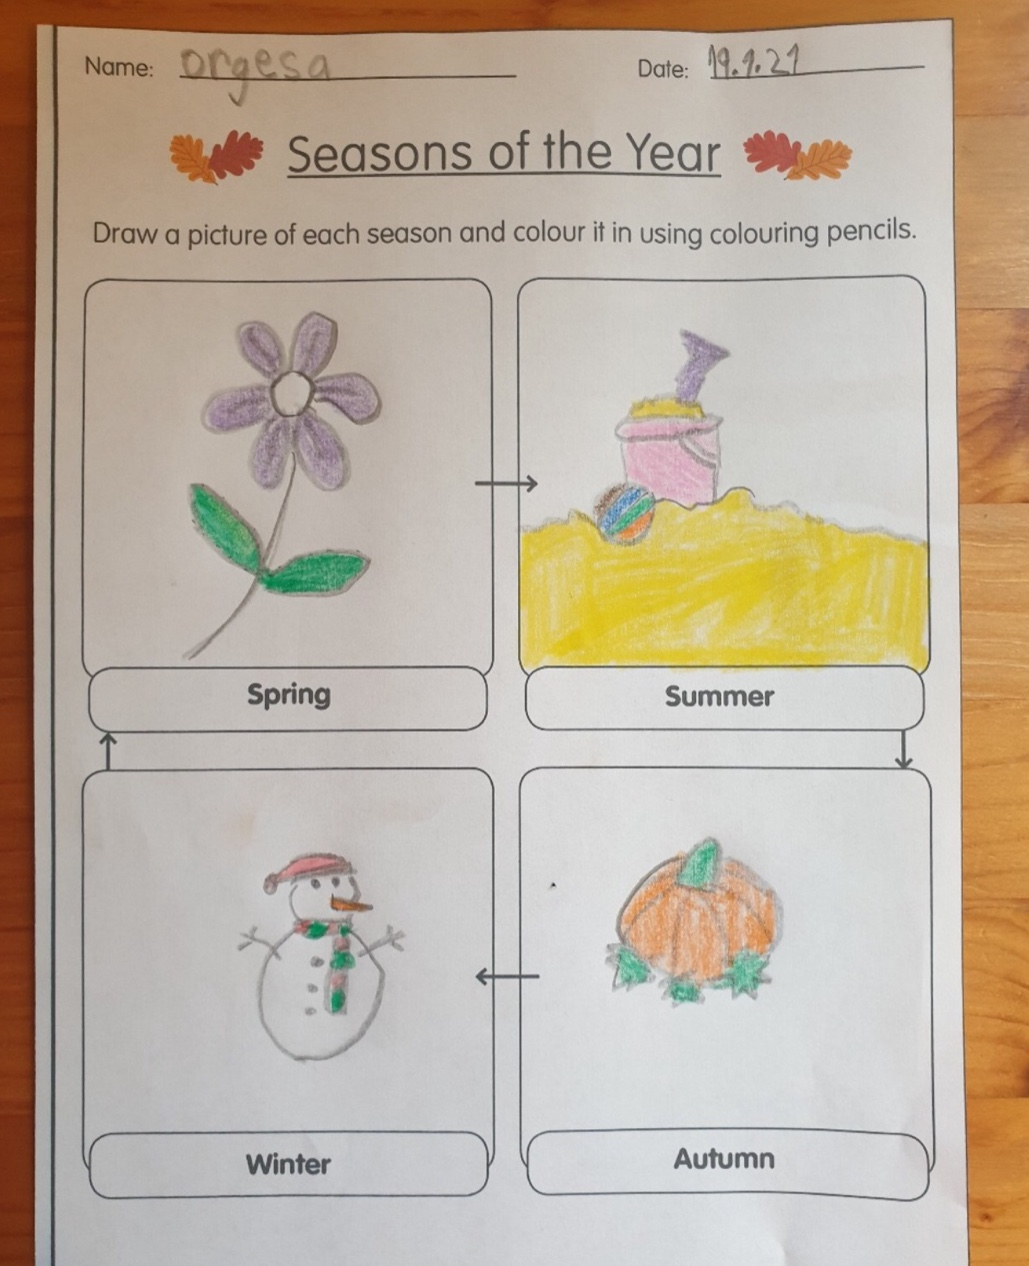 Orgesa's fantastic seasons work!